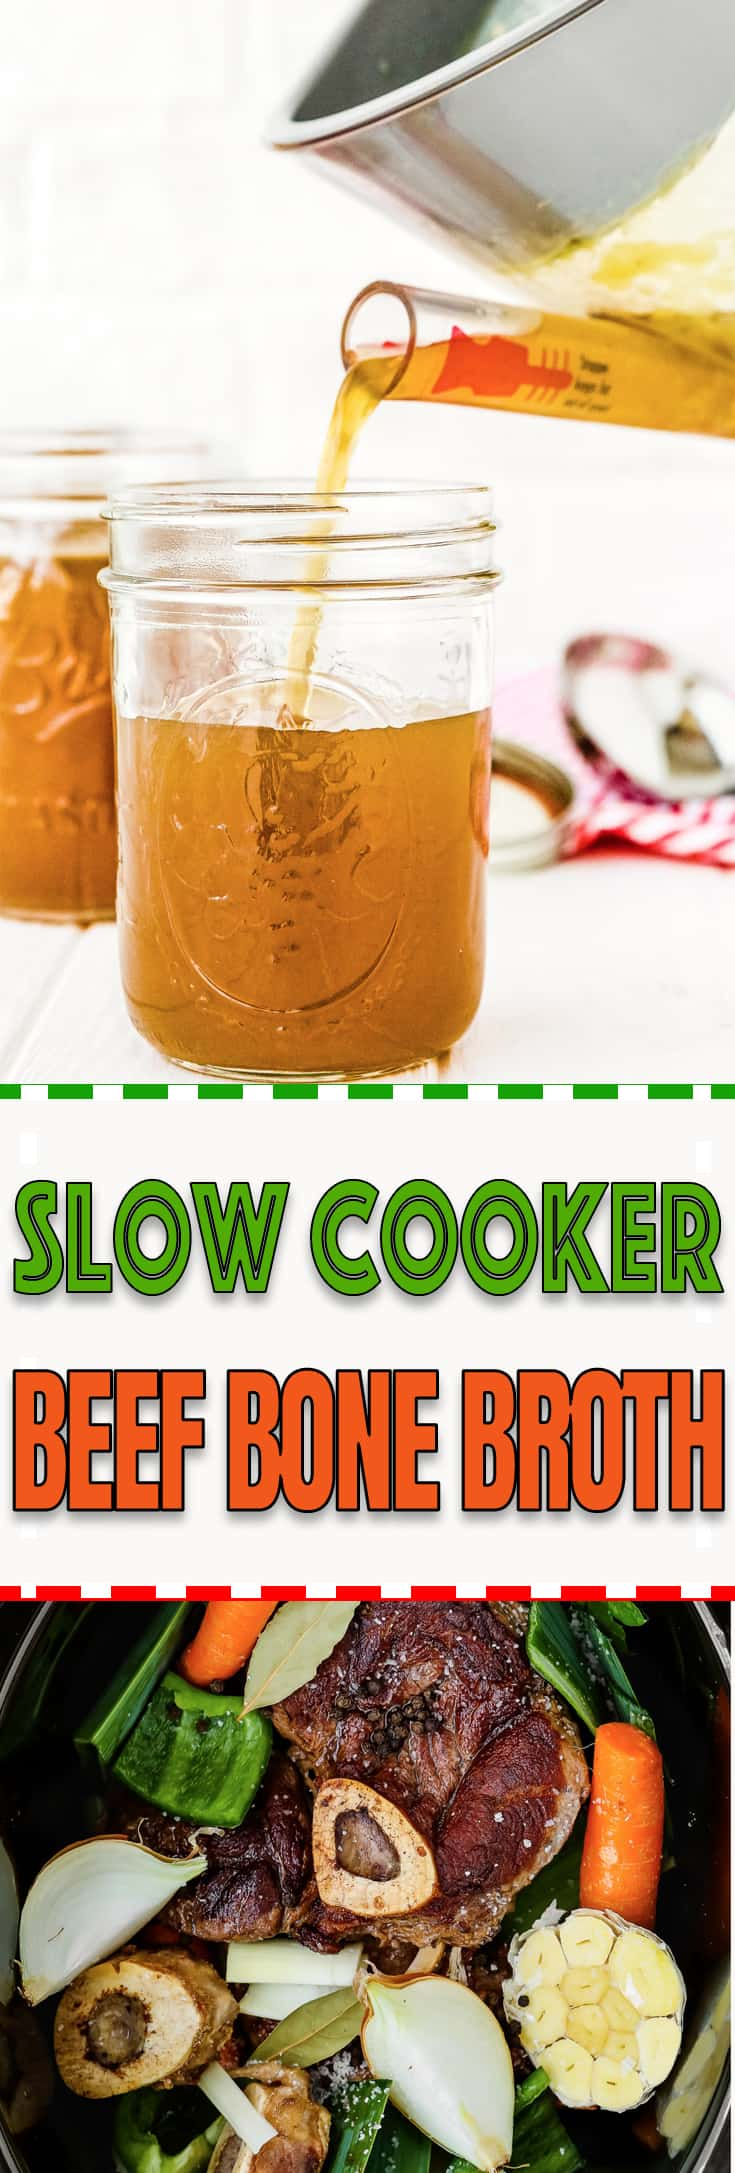 This Slow Cooker Beef Bone Broth is rich in nutrients and super tasty! It's easy to make and it's a money saver, too. Enjoy it on its own or use it to make your favorite stew, soup, and many other dishes. https://mommyshomecooking.com